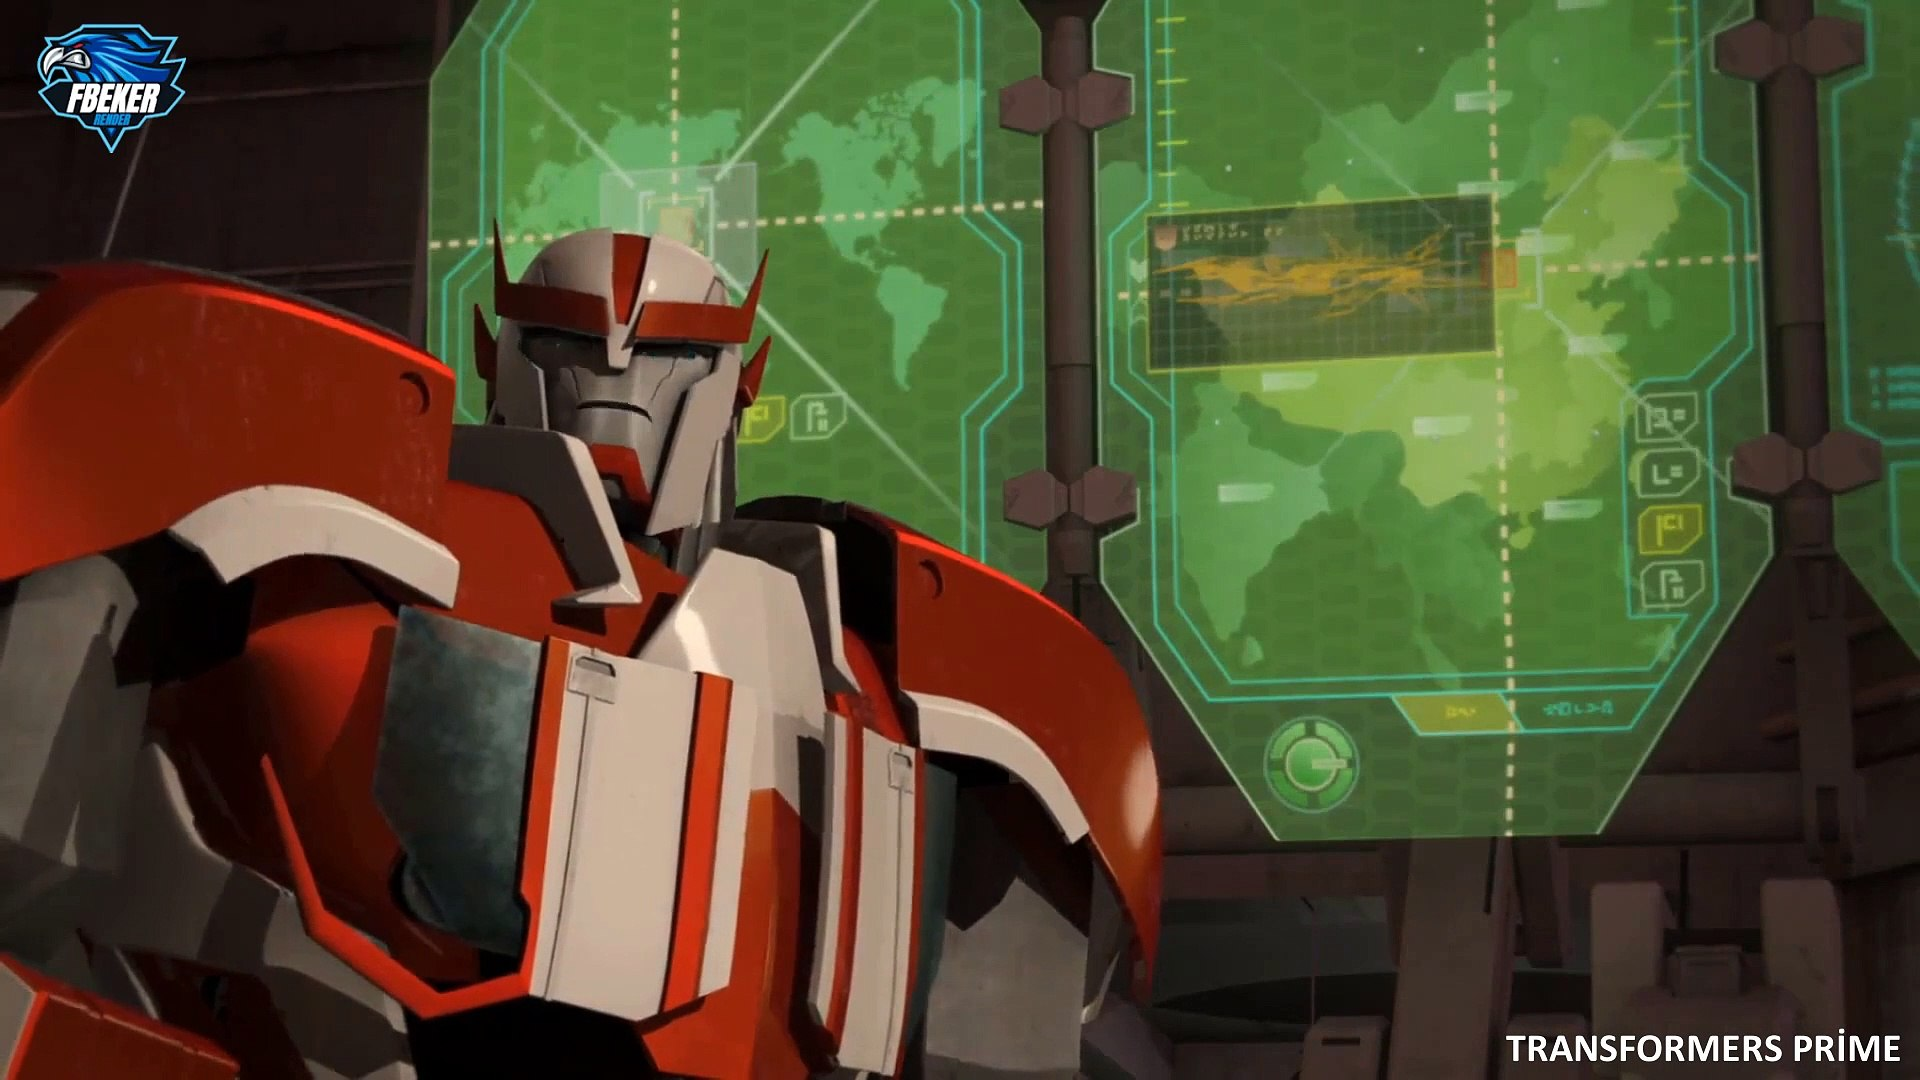 Transformers Prime 13.Bölüm Full Hd